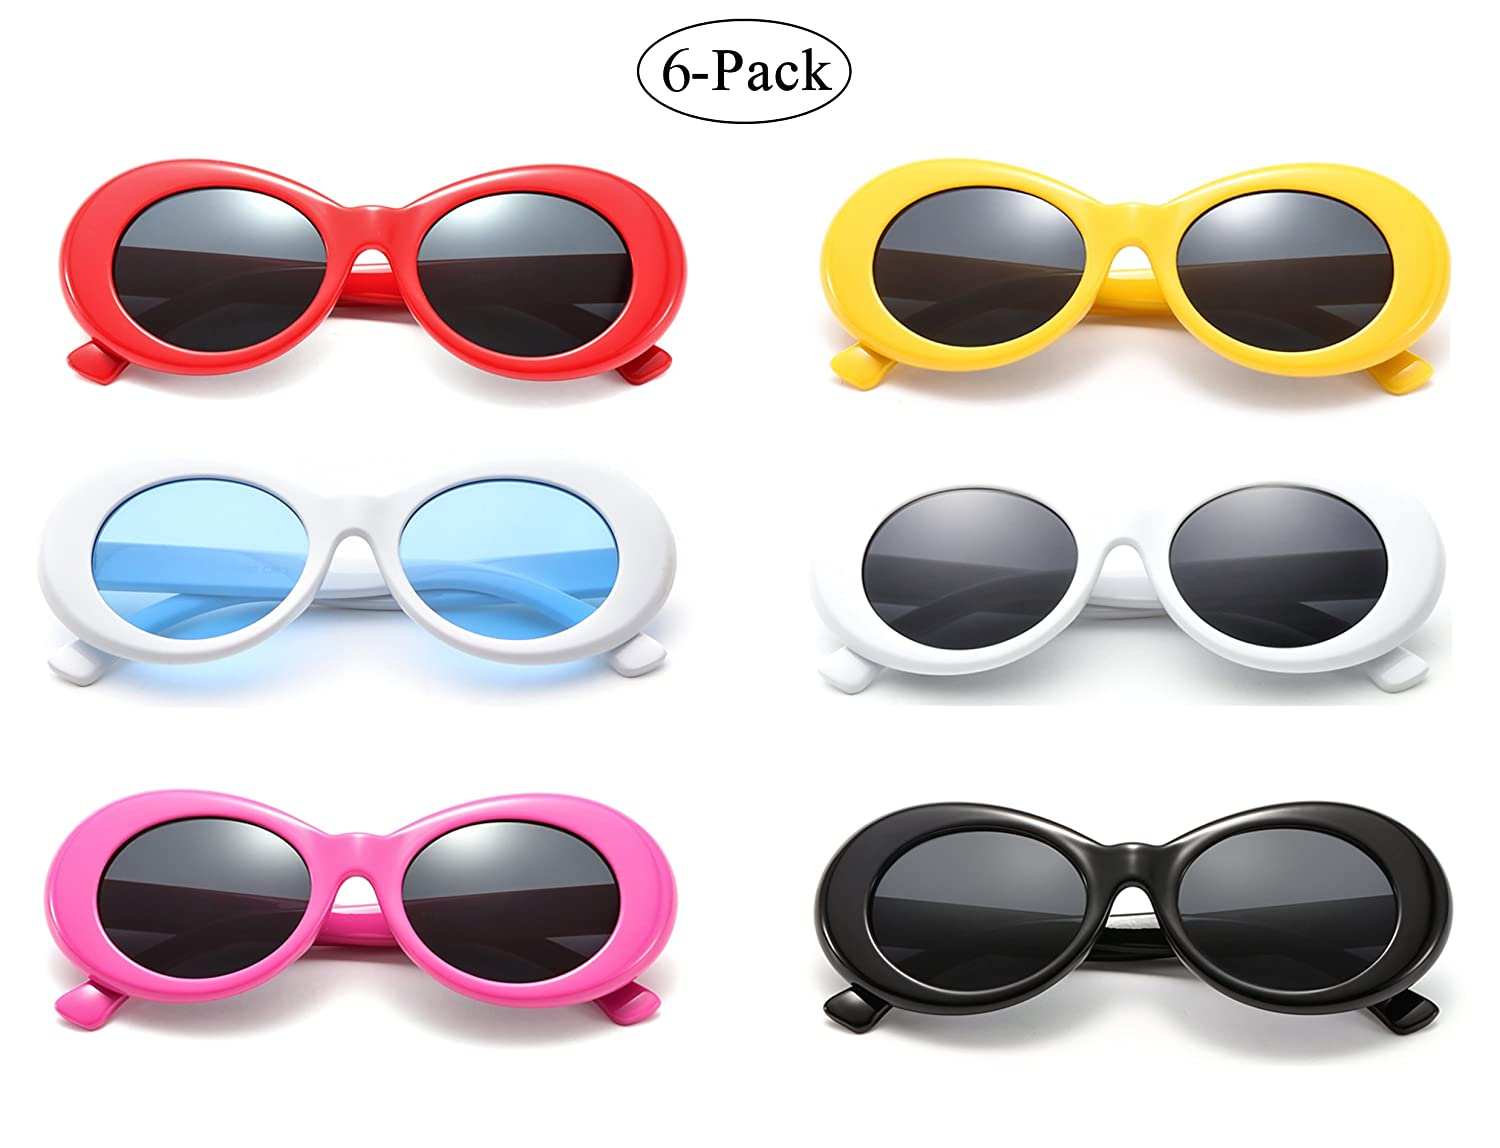 898d071418 Retro oval sunglasses pack thick frame clout goggles kurt cobain vintage  cool jpg 1500x1148 Clout goggles